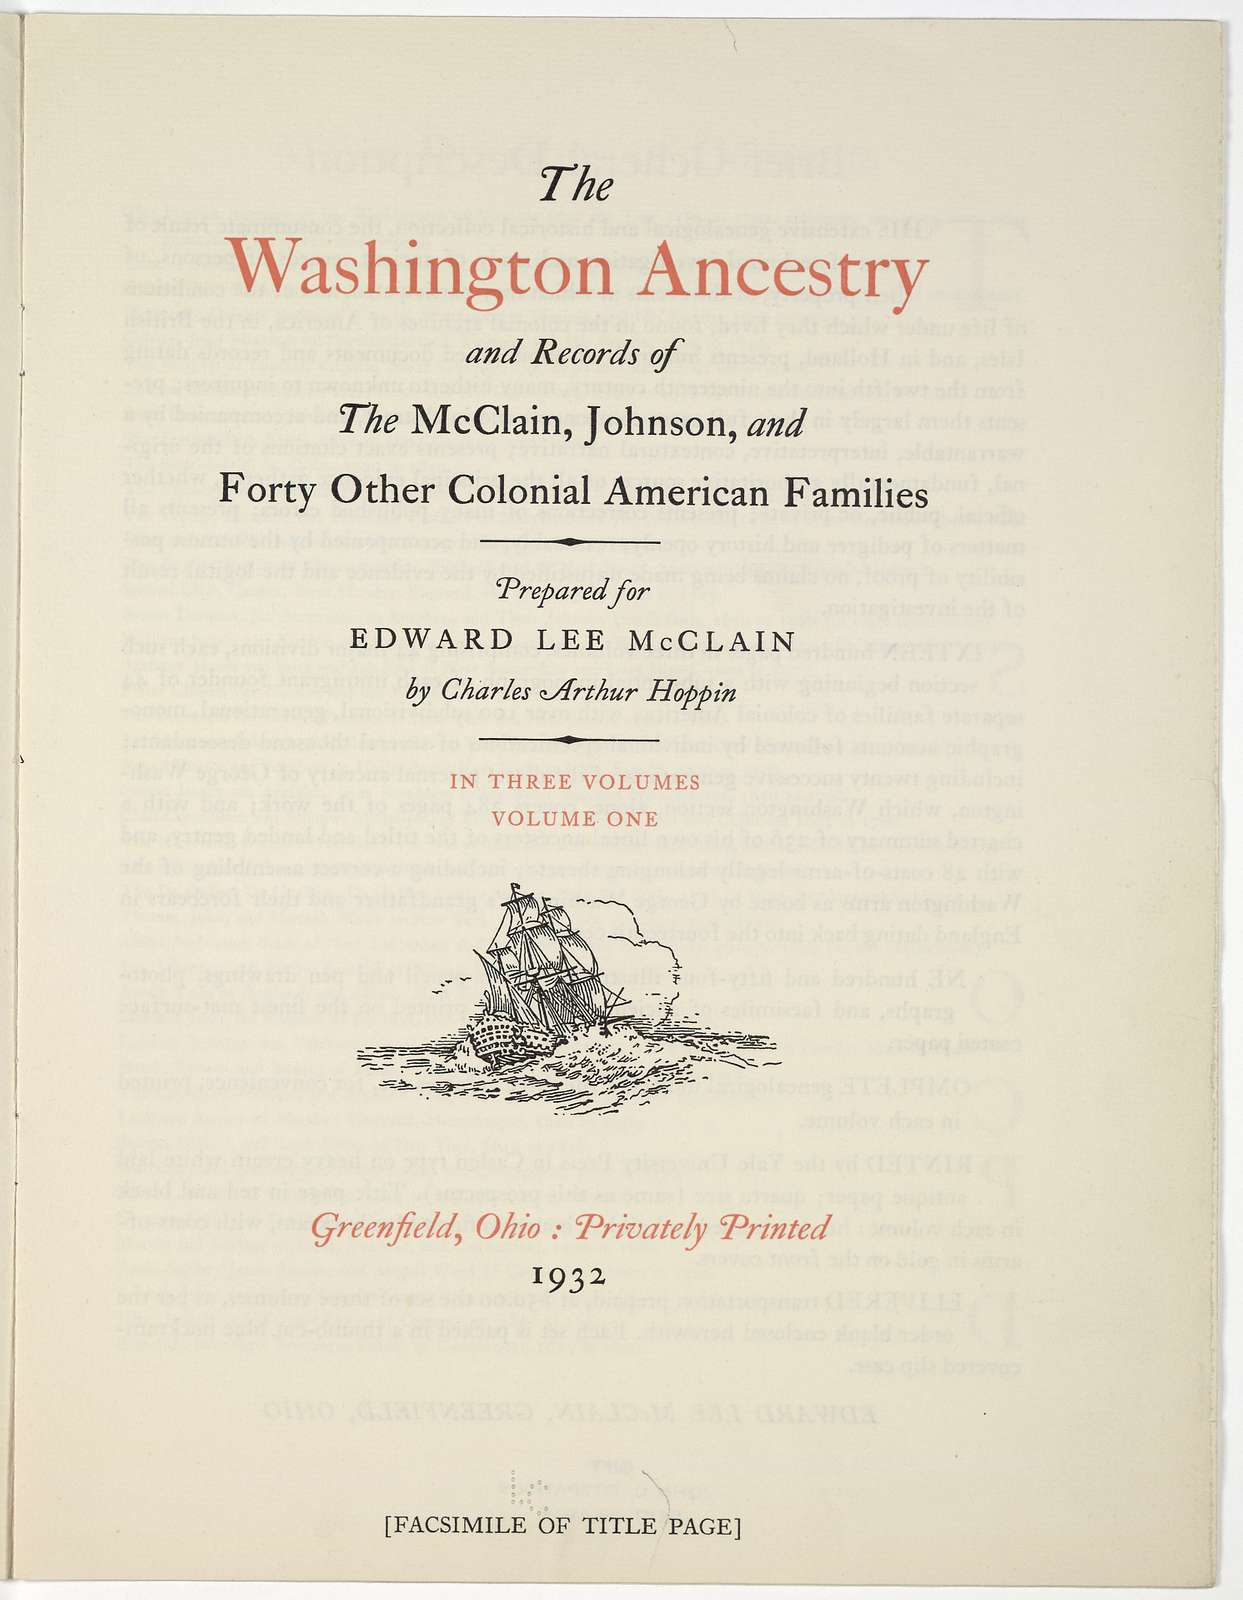 The Washington ancestry and records of the McClain, Johnson, and forty other colonial American families. Prepared for Edward Lee McClain by Charles Arthur Hoppin ... Greenfield Ohio: Privately printed 1932.